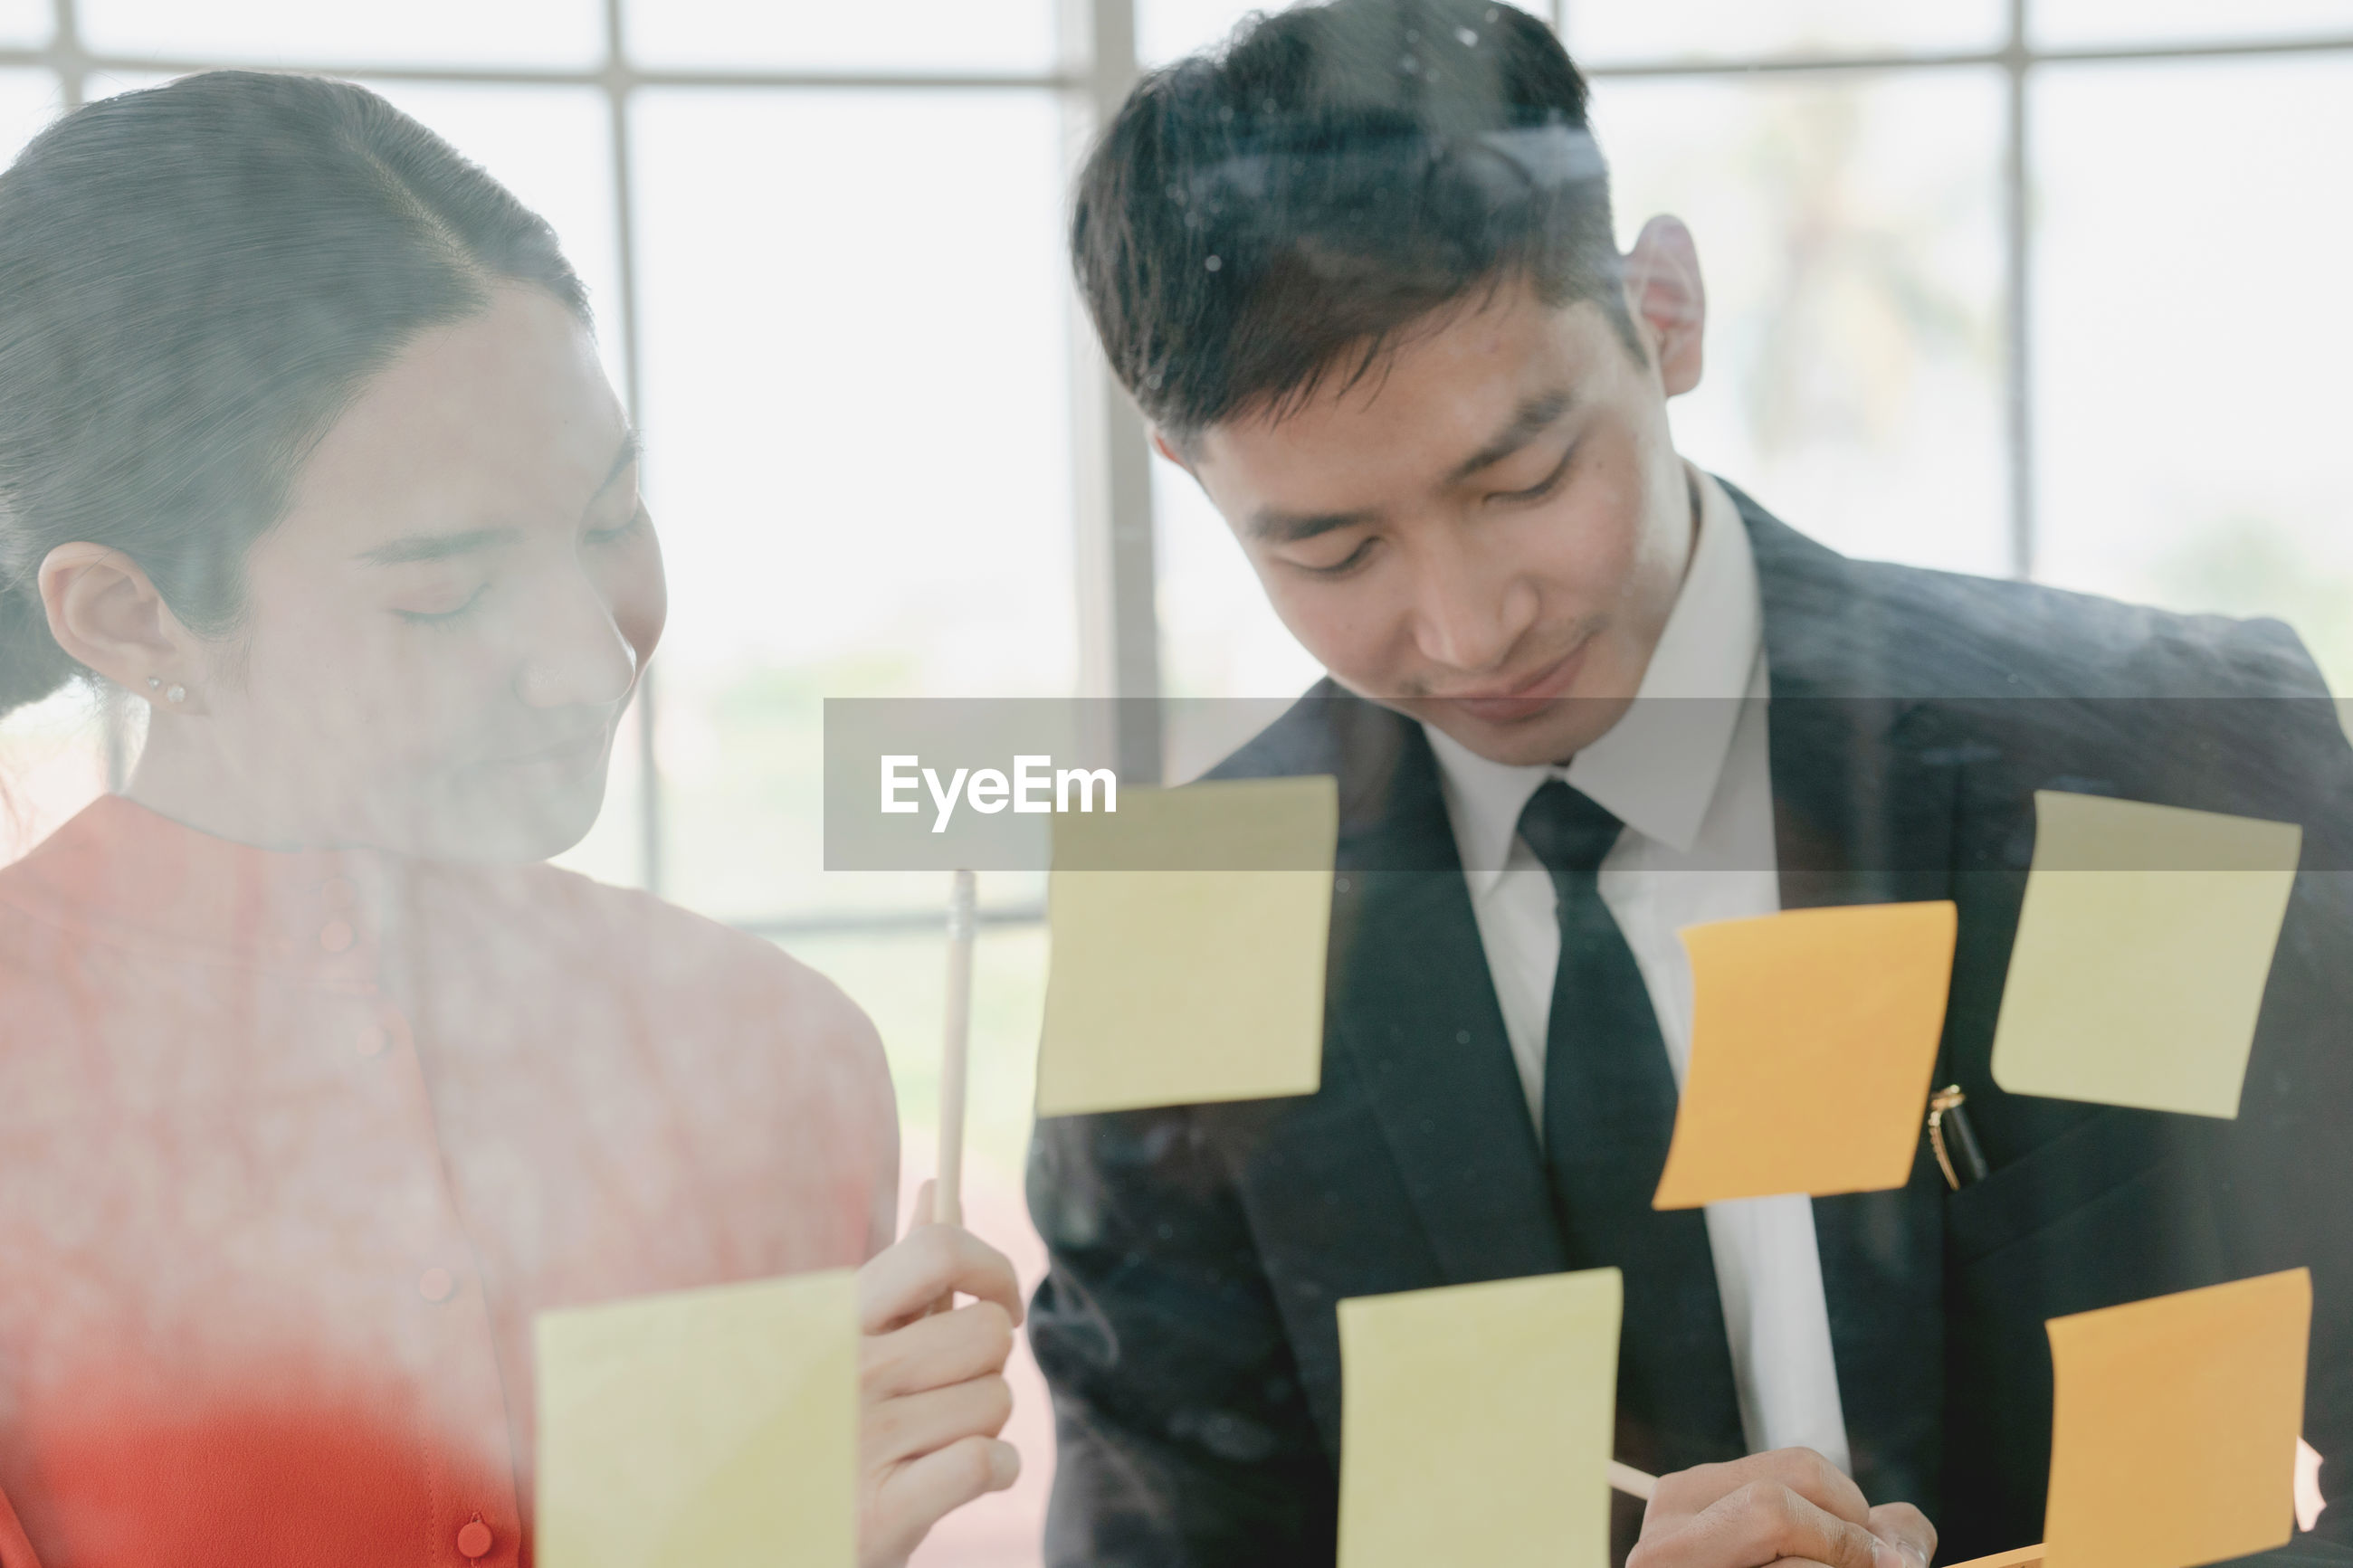 Smiling young man and woman by adhesive notes seen through glass window